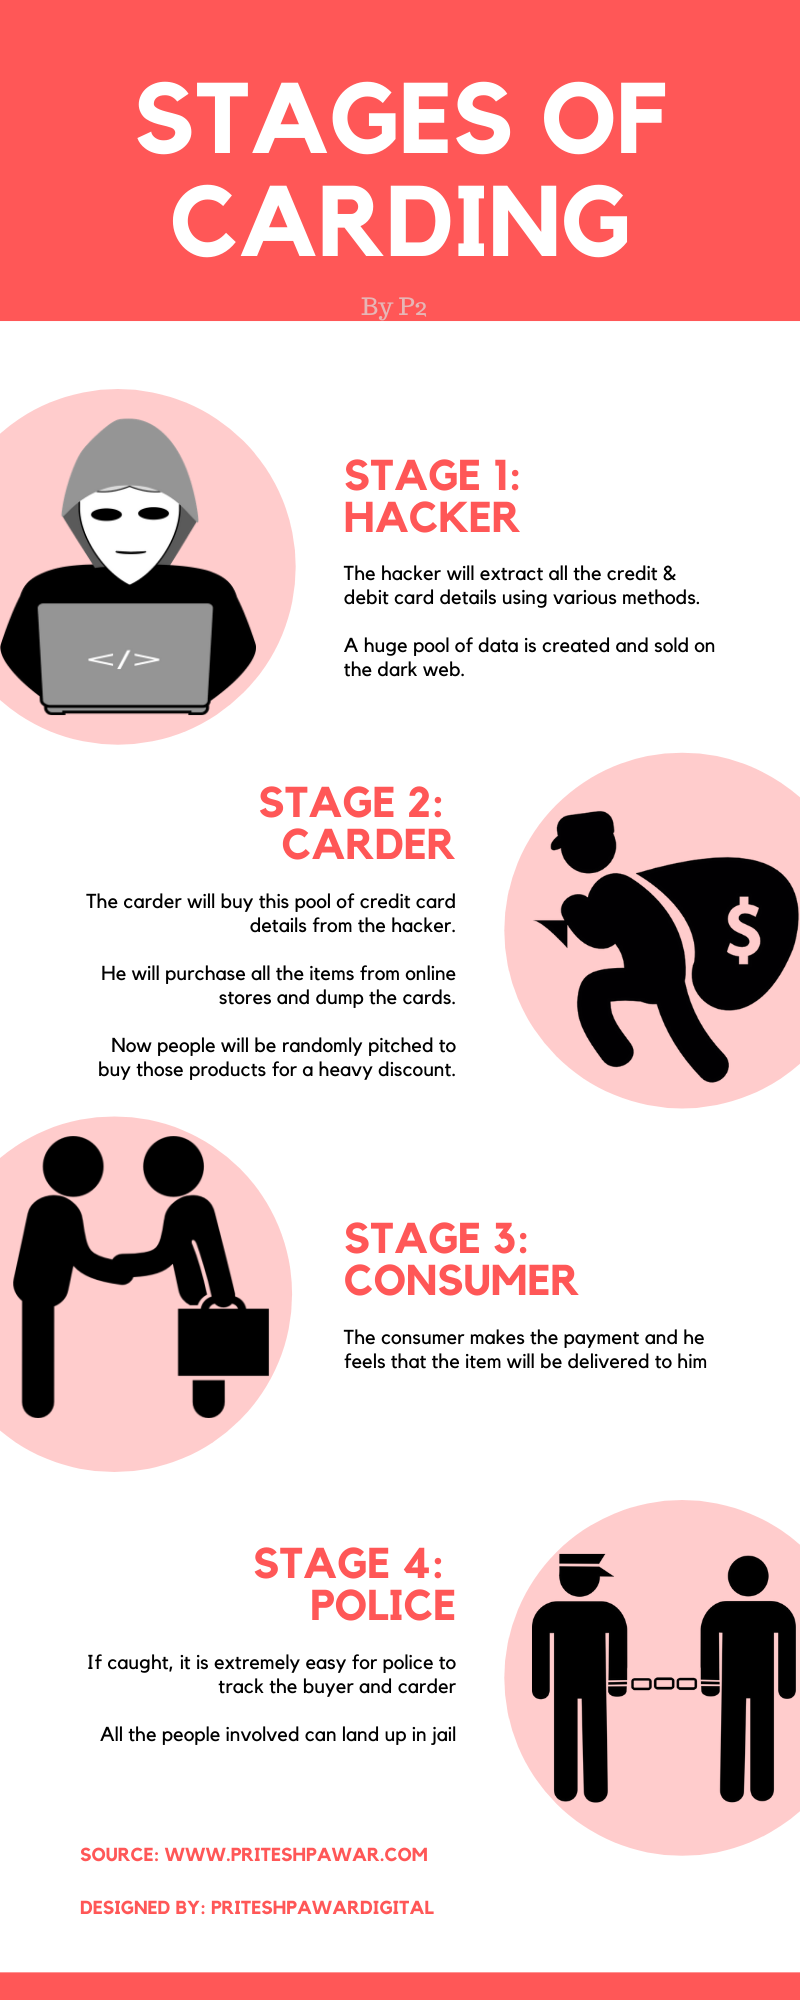 Stages of Carding Infographics - What is Carding? Is Carding Illegal in India?